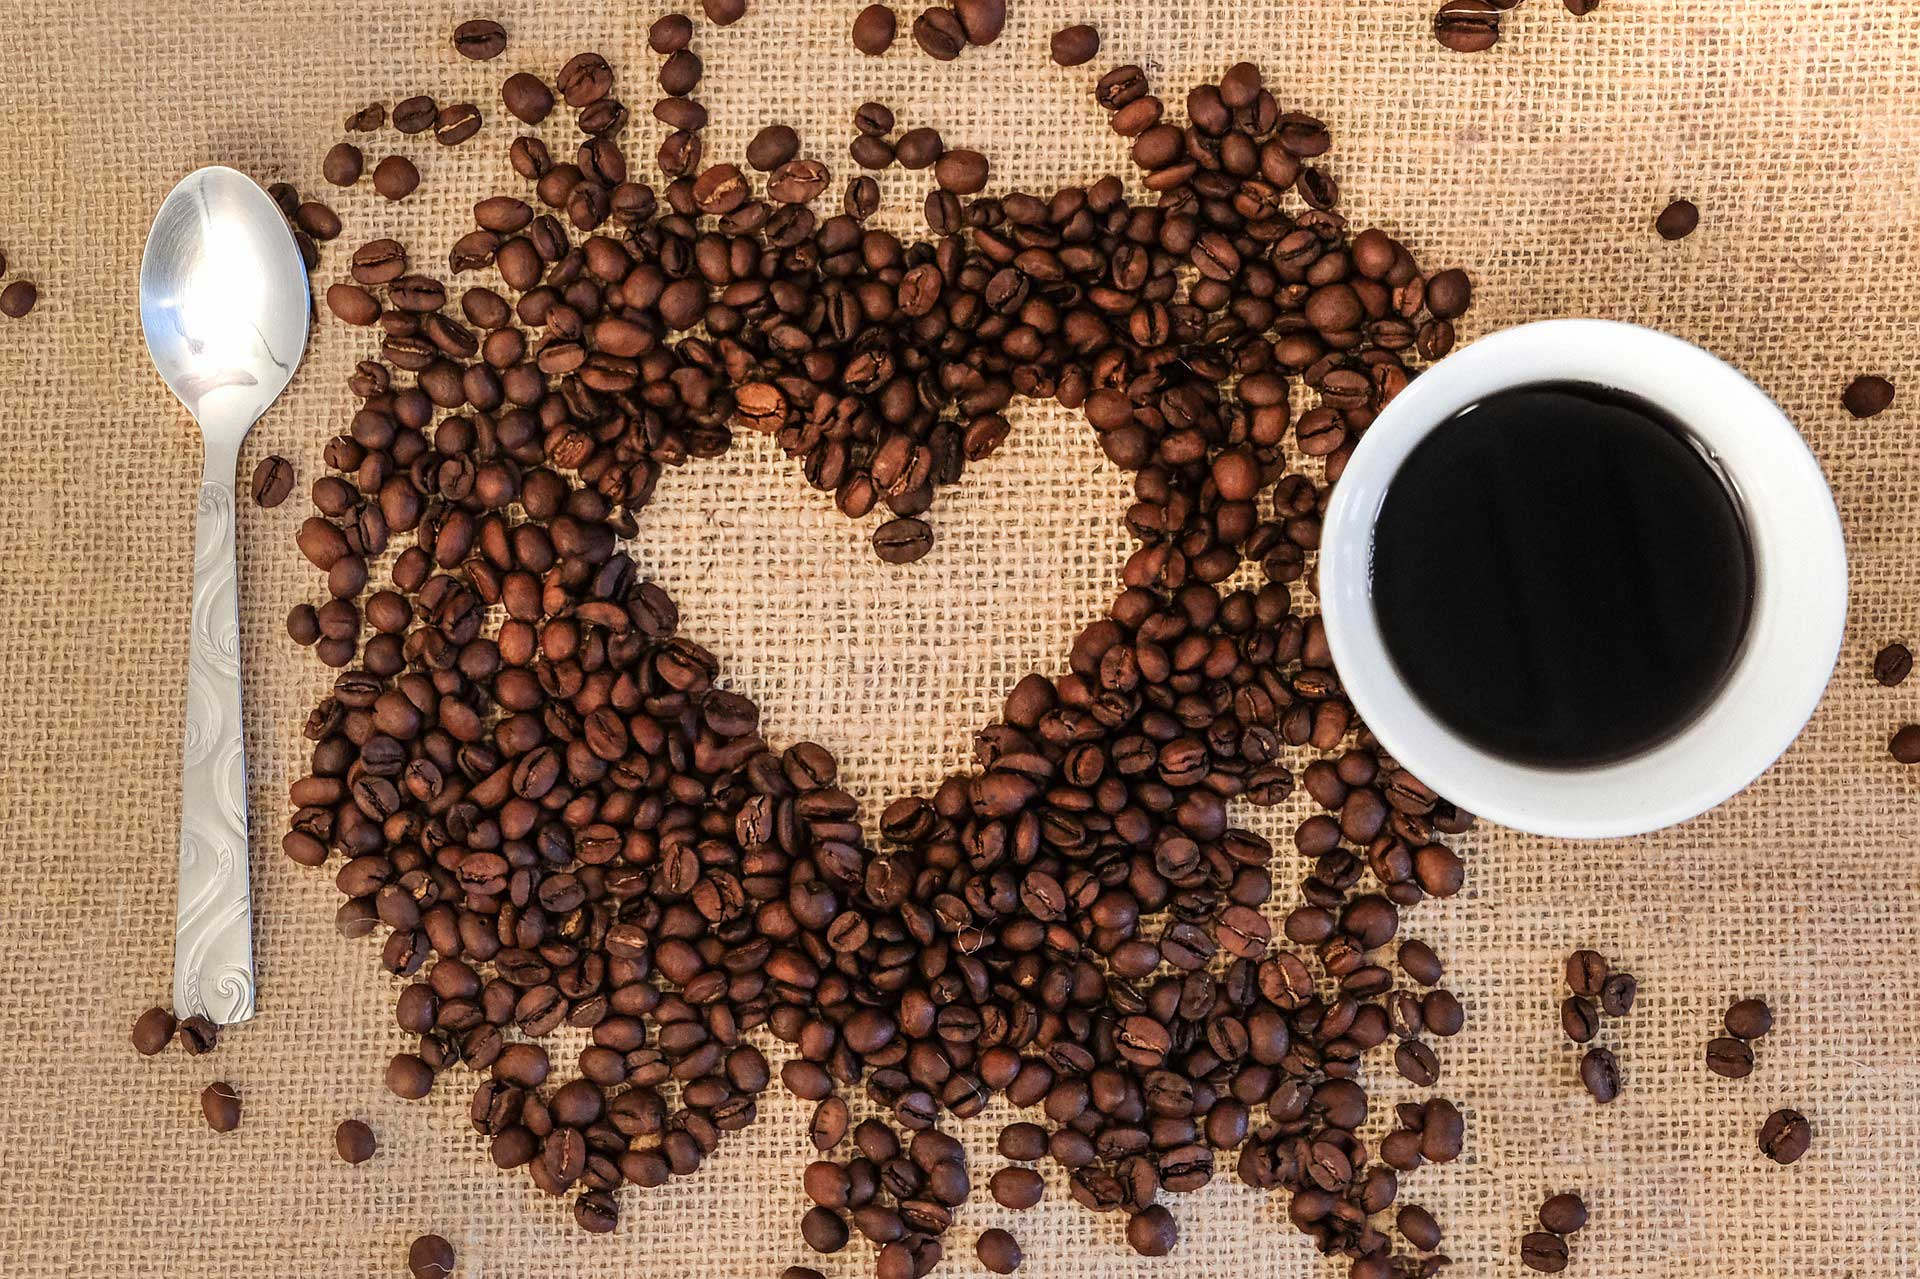 Upping Coffee Intake May Reduce Risk of Heart Failure, Stroke